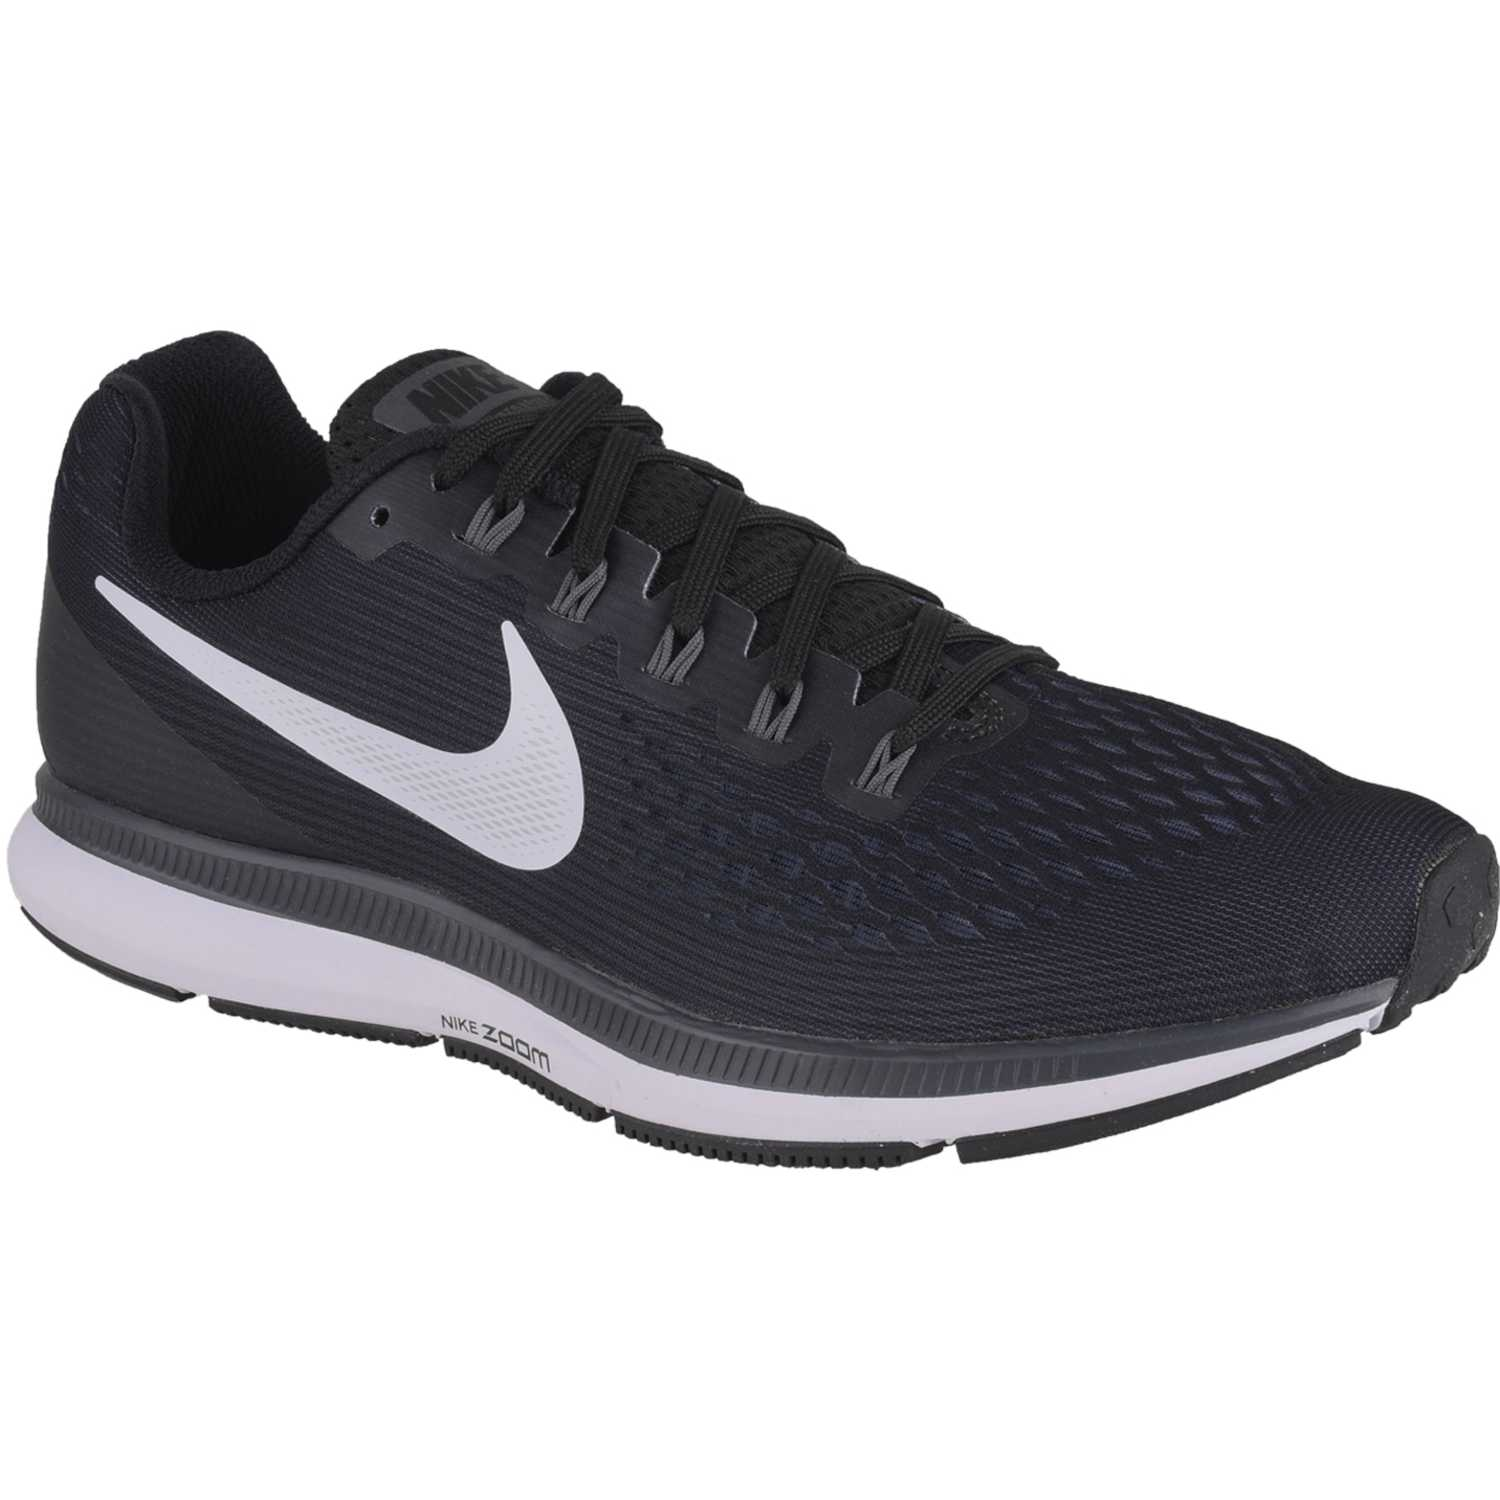 official photos 680fe a0ddc Zapatilla de Hombre Nike negro   blanco air zoom pegasus 34